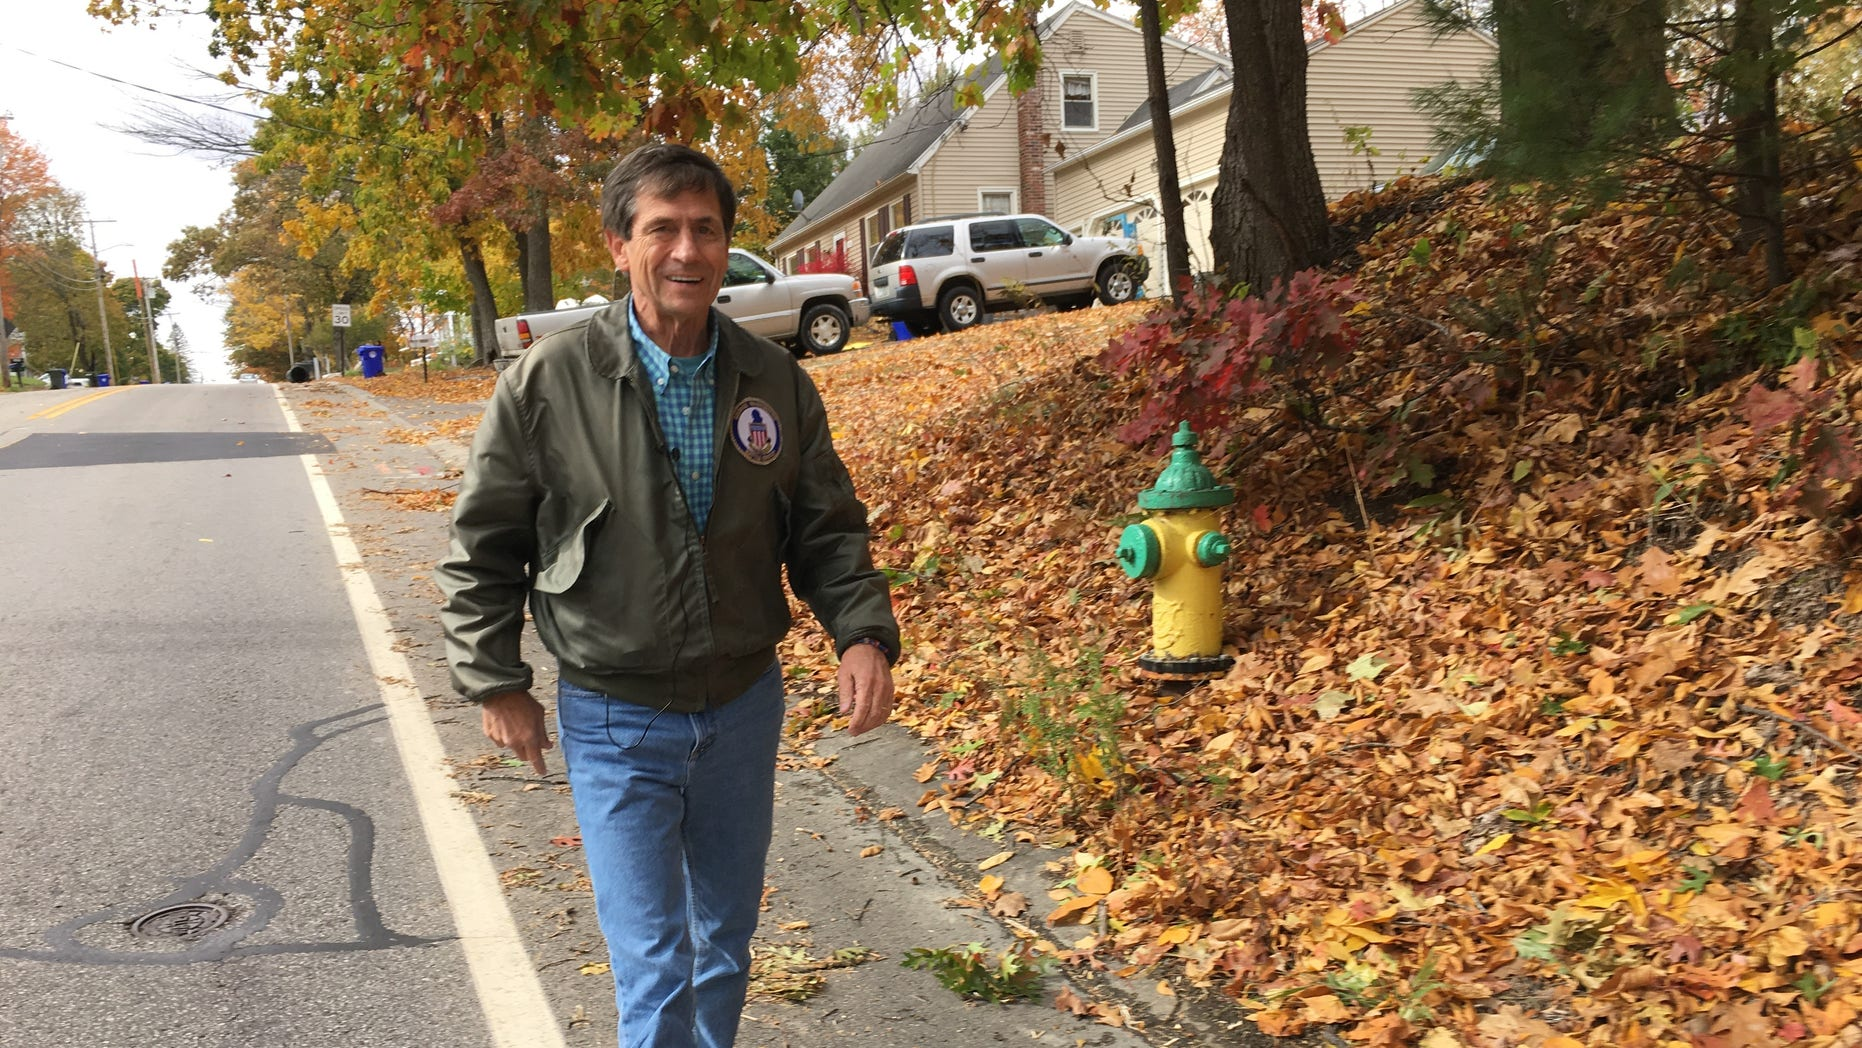 Retired admiral and former congressman Joe Sestak of Pennsylvania - a very long-shot contender for the Democratic presidential nomination, walks across the width of New Hampshire, in Manchester, NH on Oct. 18, 2019